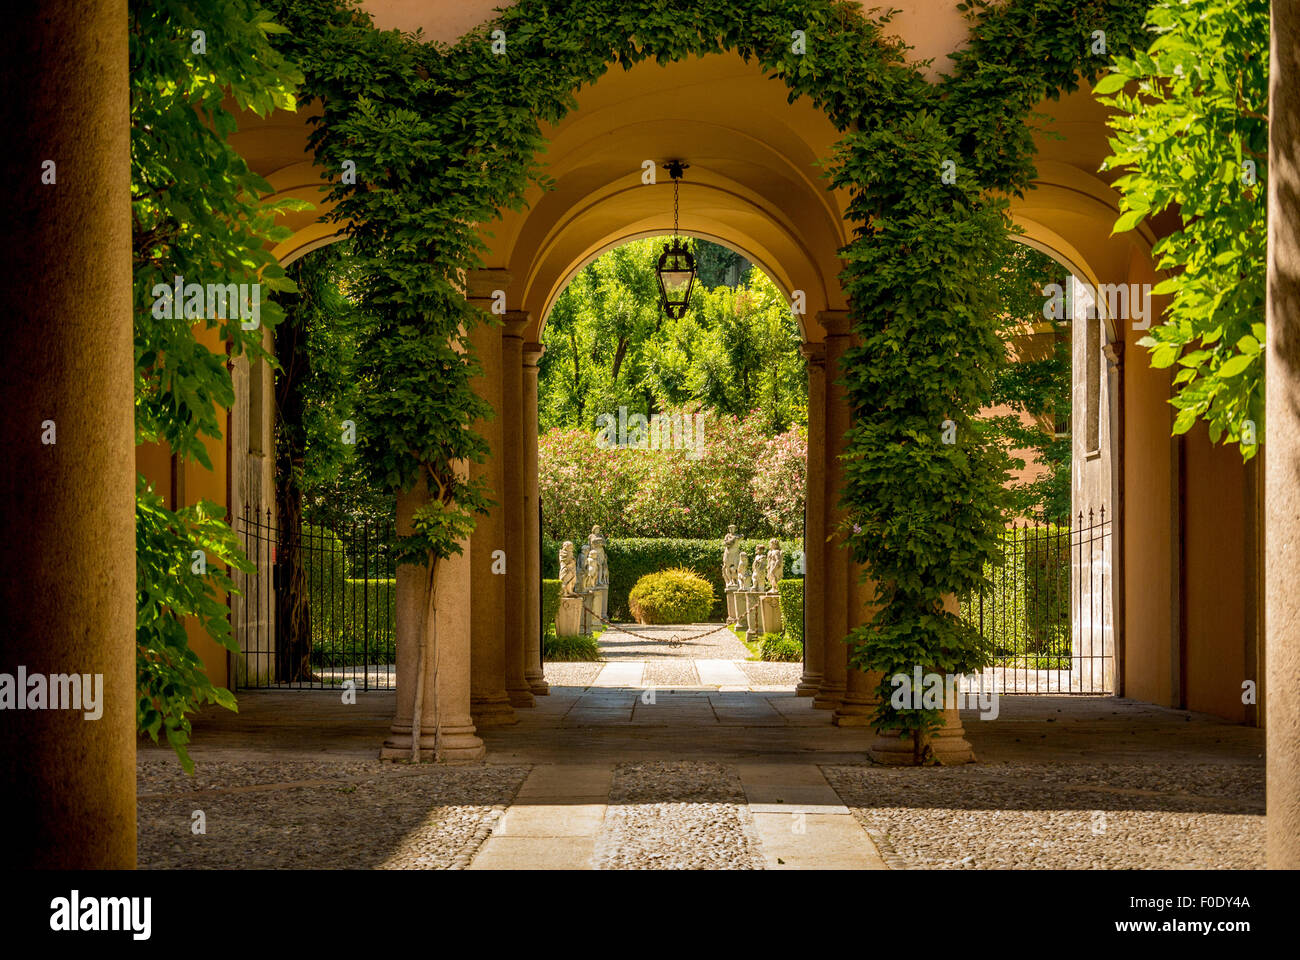 Archway leading to a courtyard - Stock Image